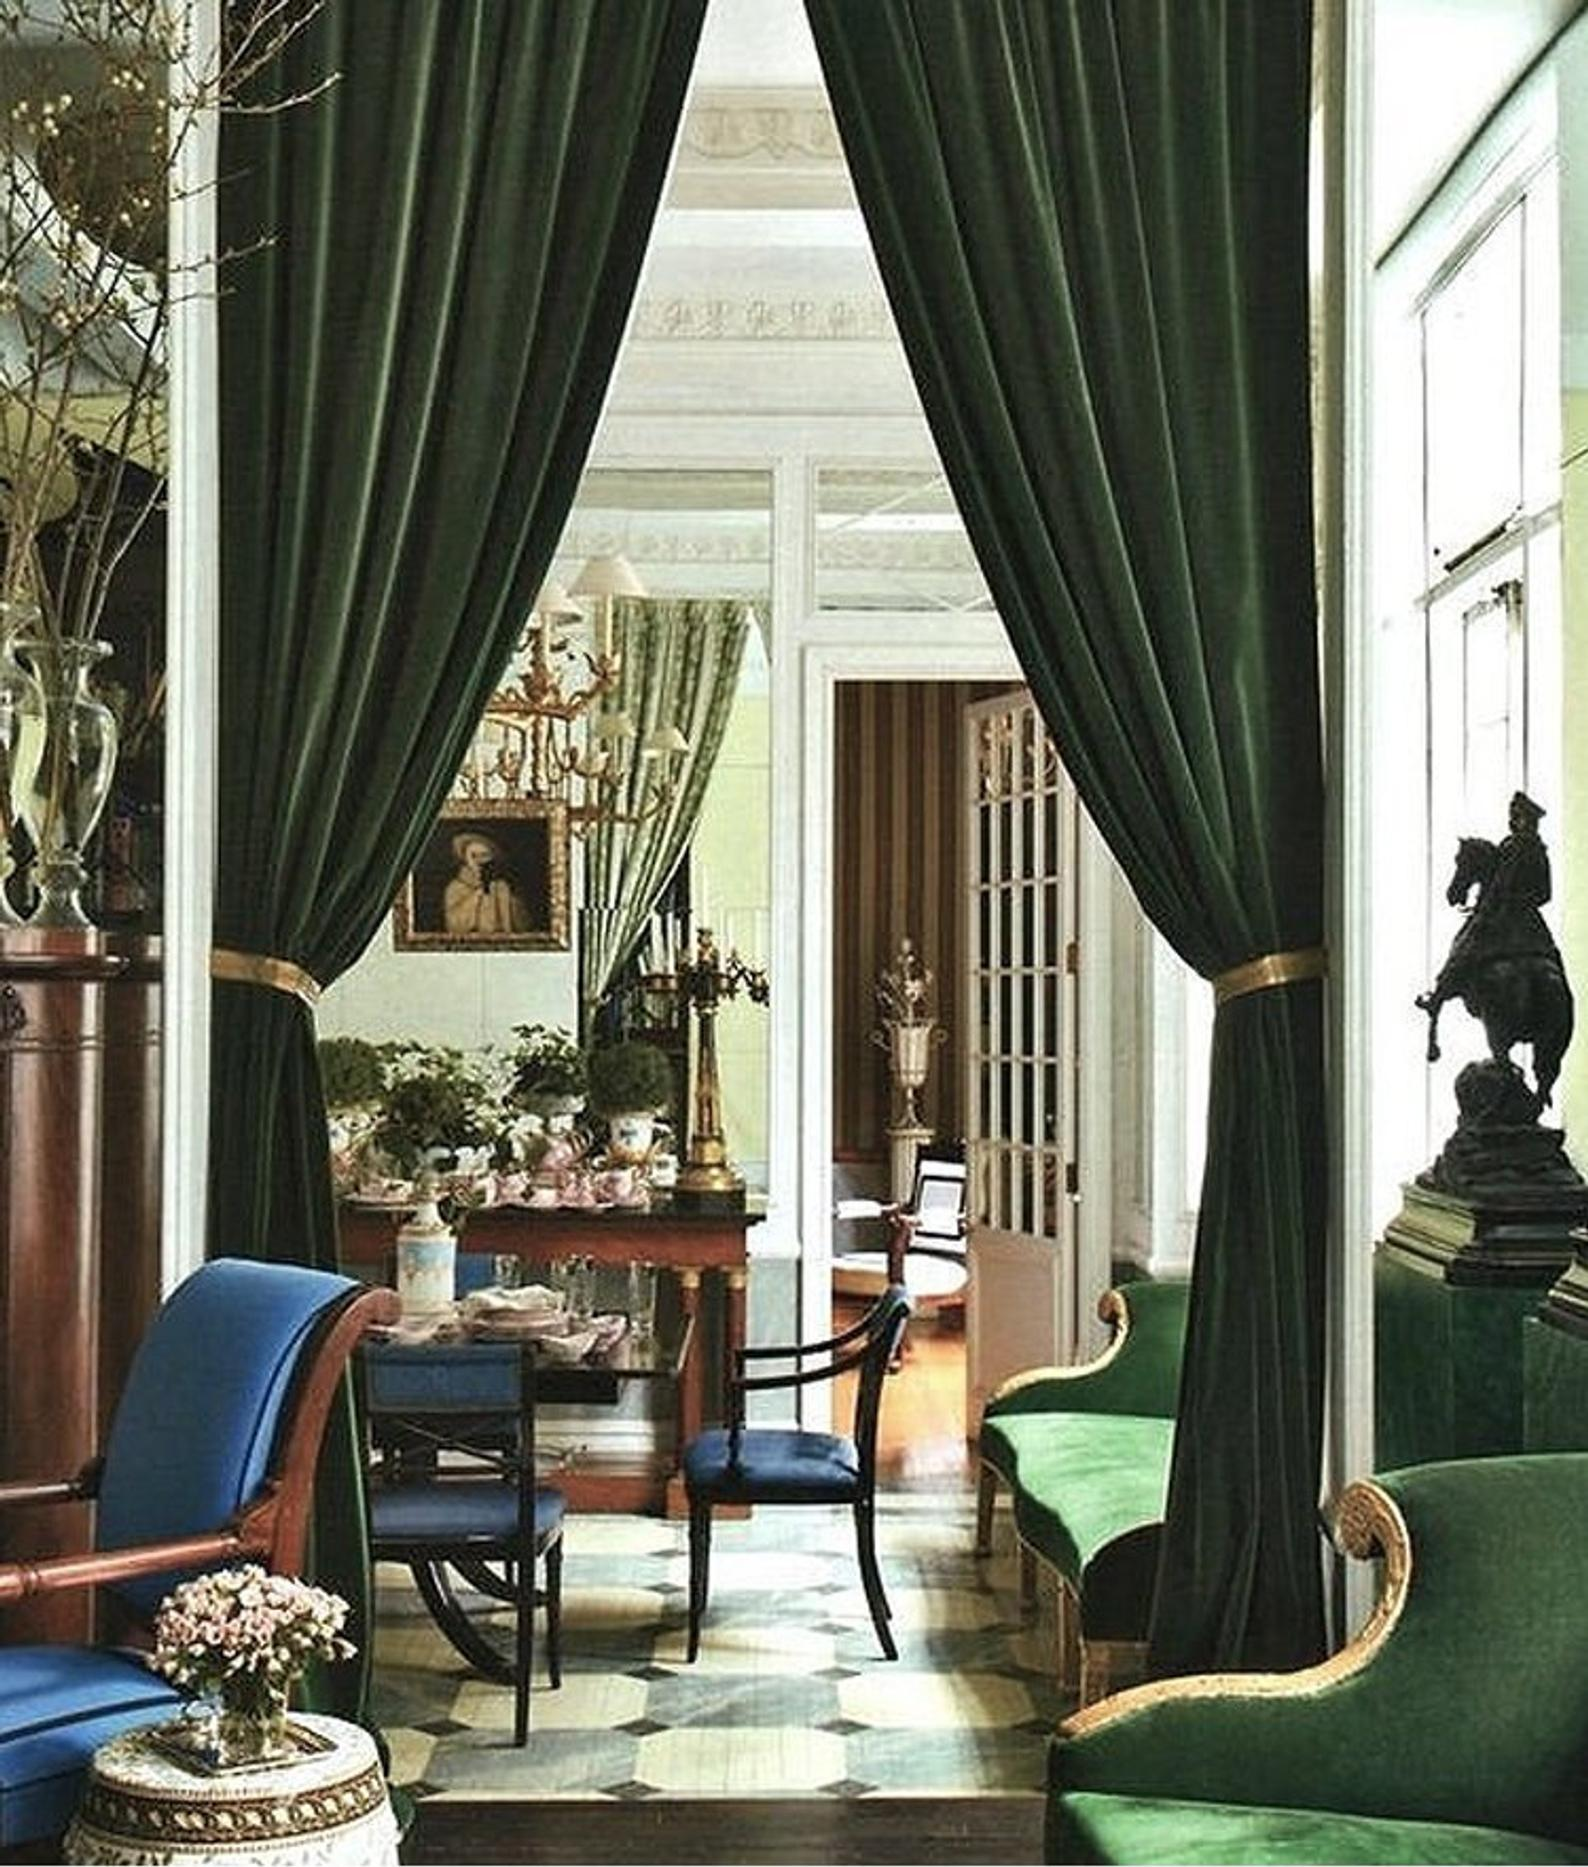 Green velvet curtains flanking entrains to a regency style dining room